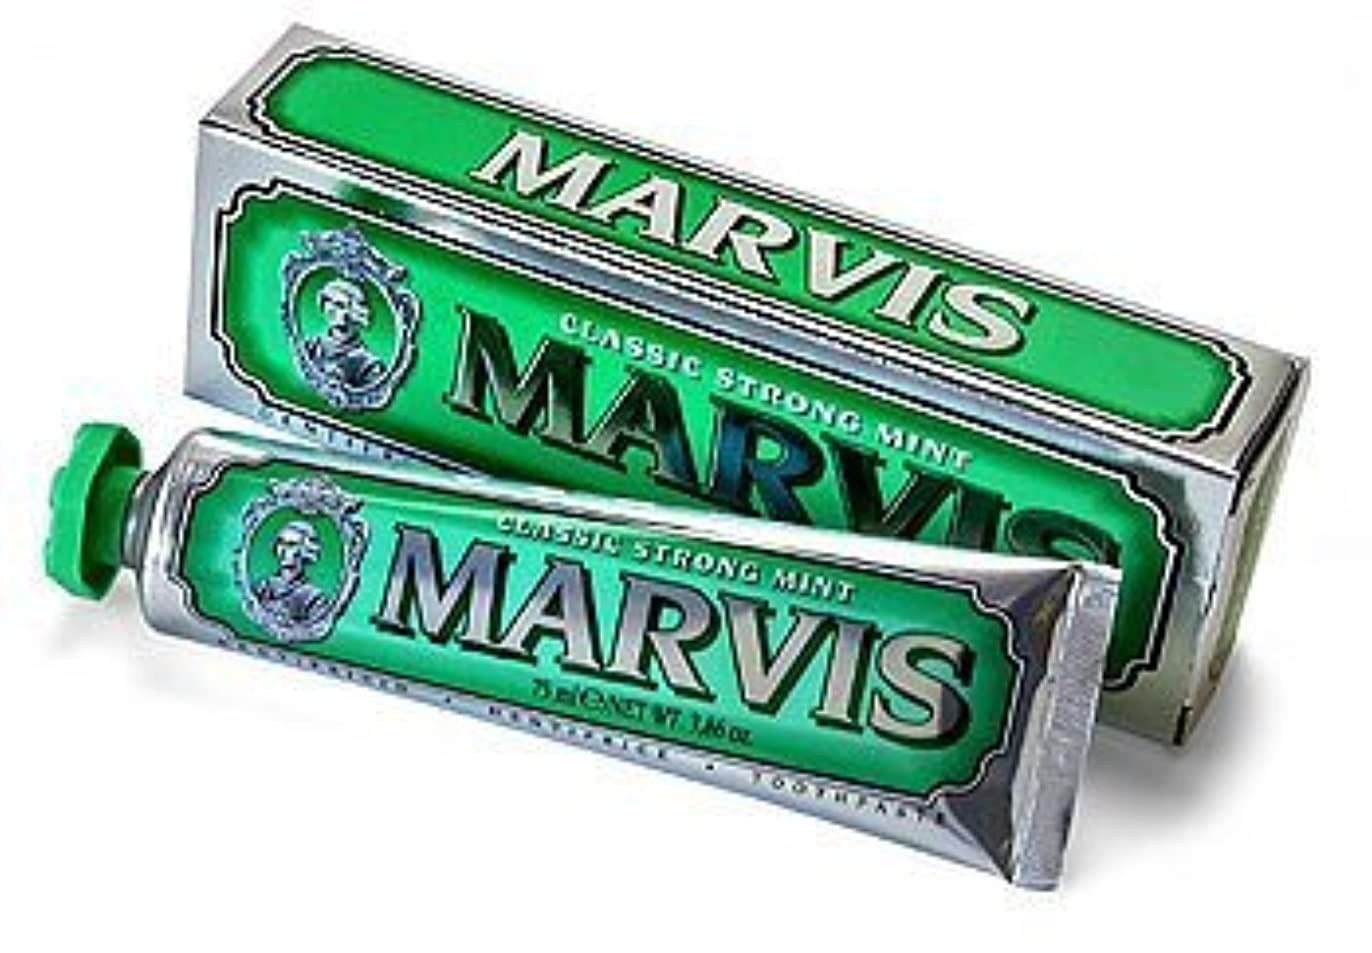 ロータリーペデスタル食用Marvis Classic Strong Mint Toothpaste - 75ml by Marvis [並行輸入品]